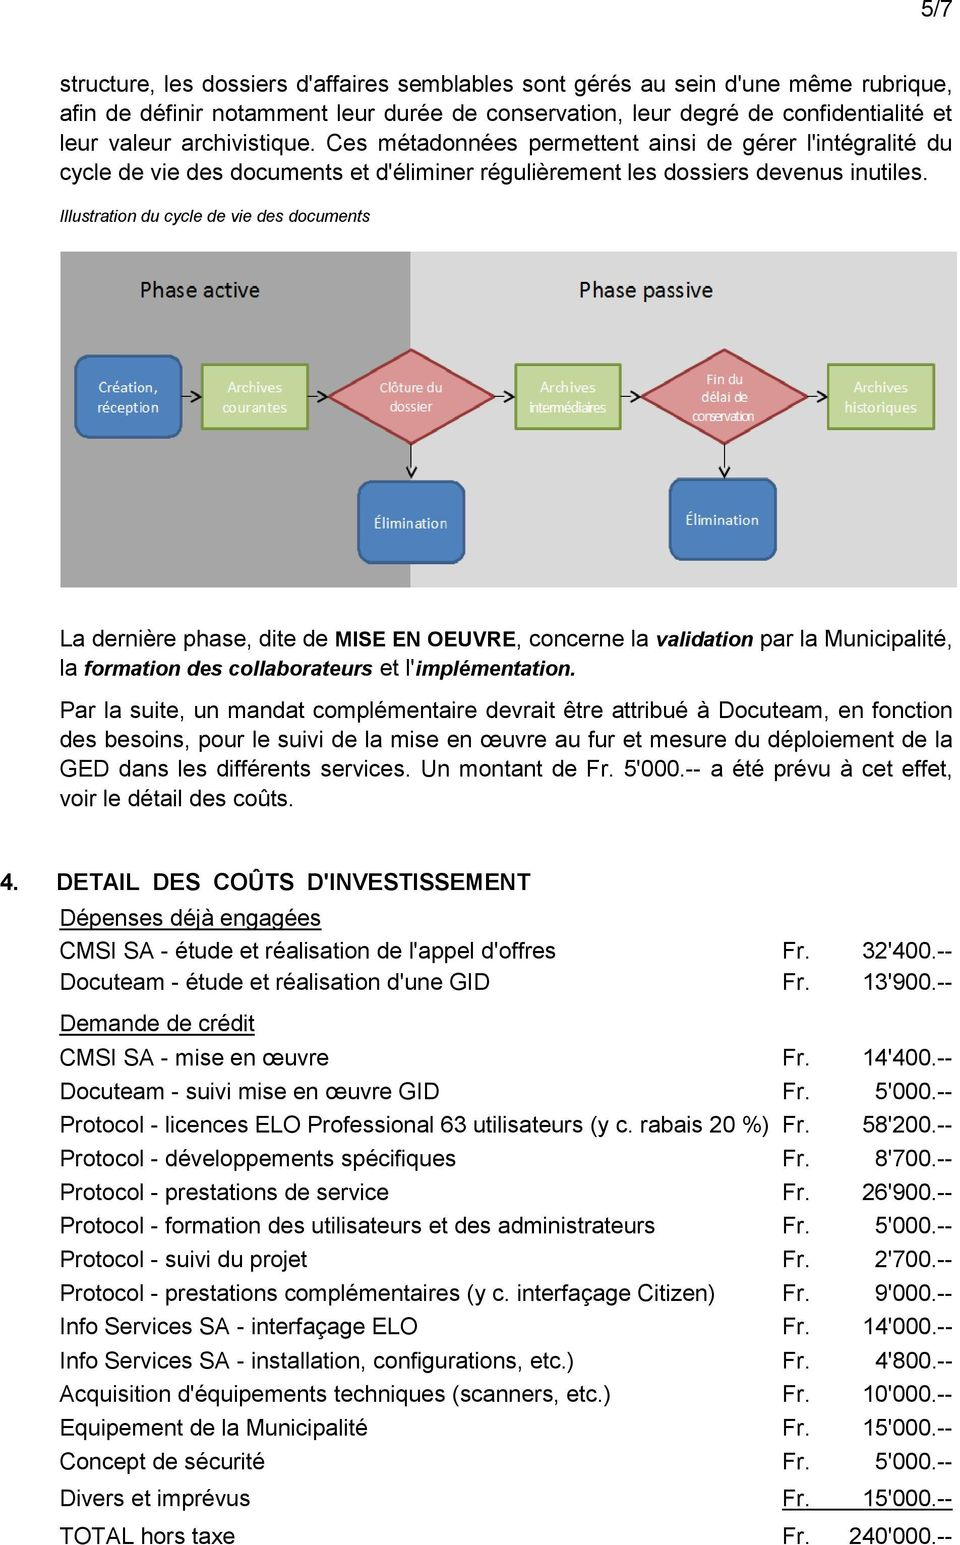 Illustration du cycle de vie des documents La dernière phase, dite de MISE EN OEUVRE, concerne la validation par la Municipalité, la formation des collaborateurs et l'implémentation.